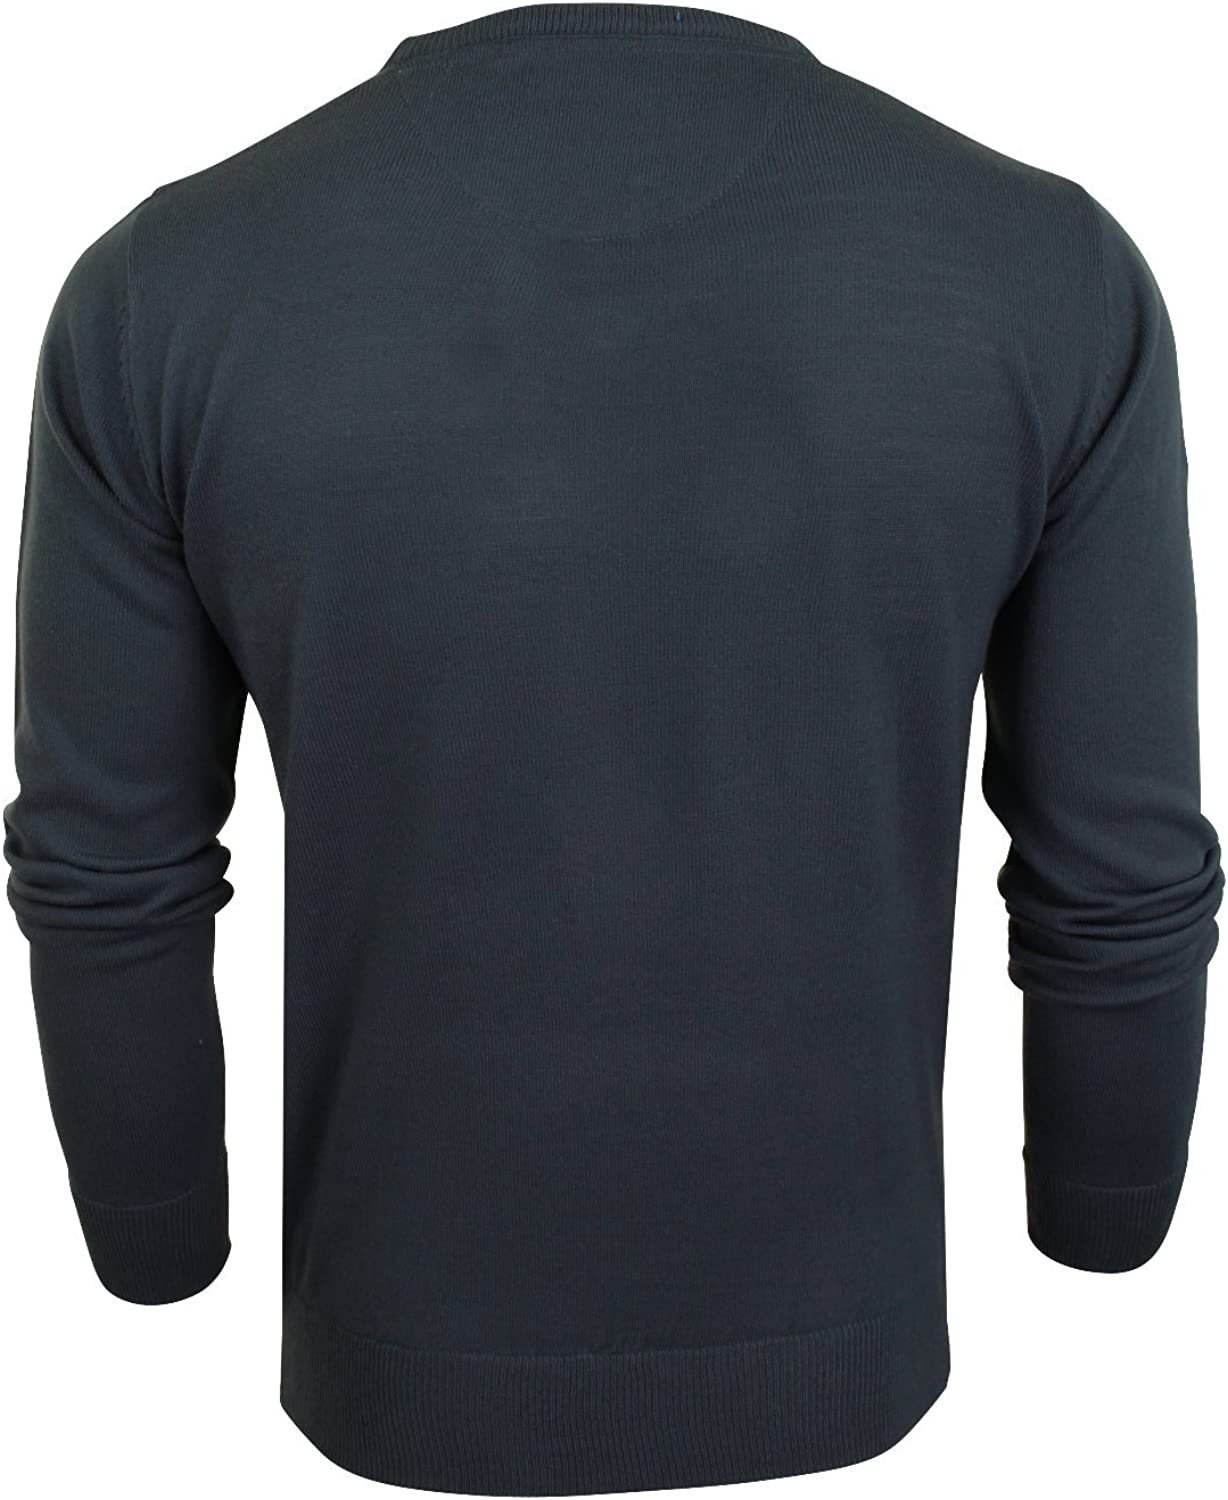 Xact Mens Jumper Fine Knit V Neck or Crew Neck